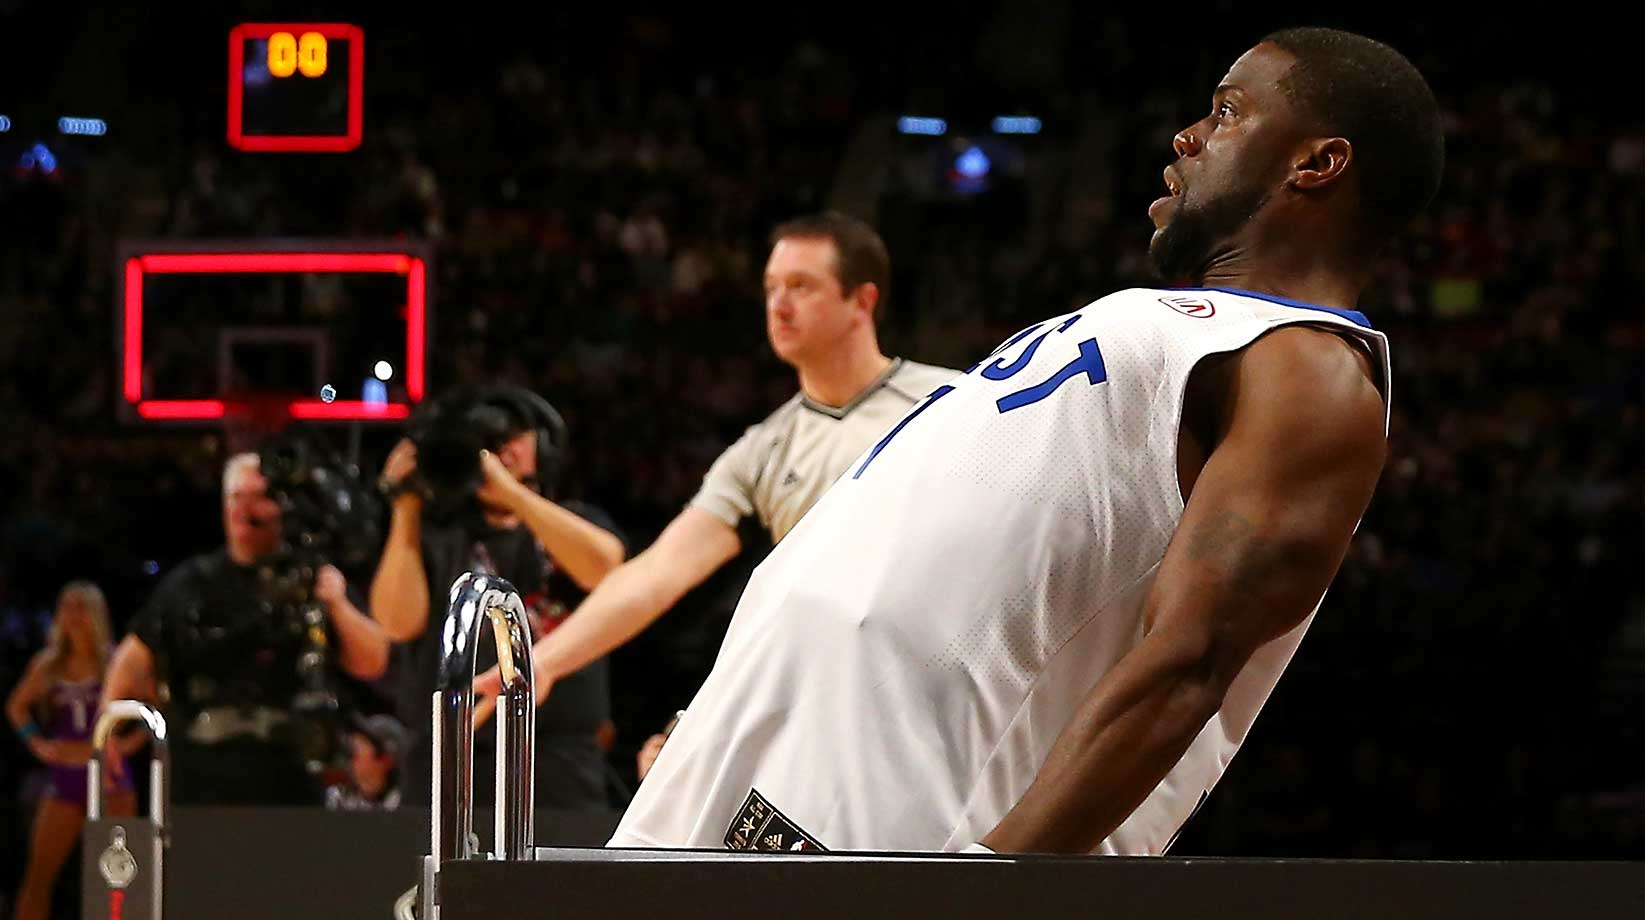 Actor Kevin Hart reacts after making a basket in a three-point contest against Draymond Green of the Golden State Warriors.